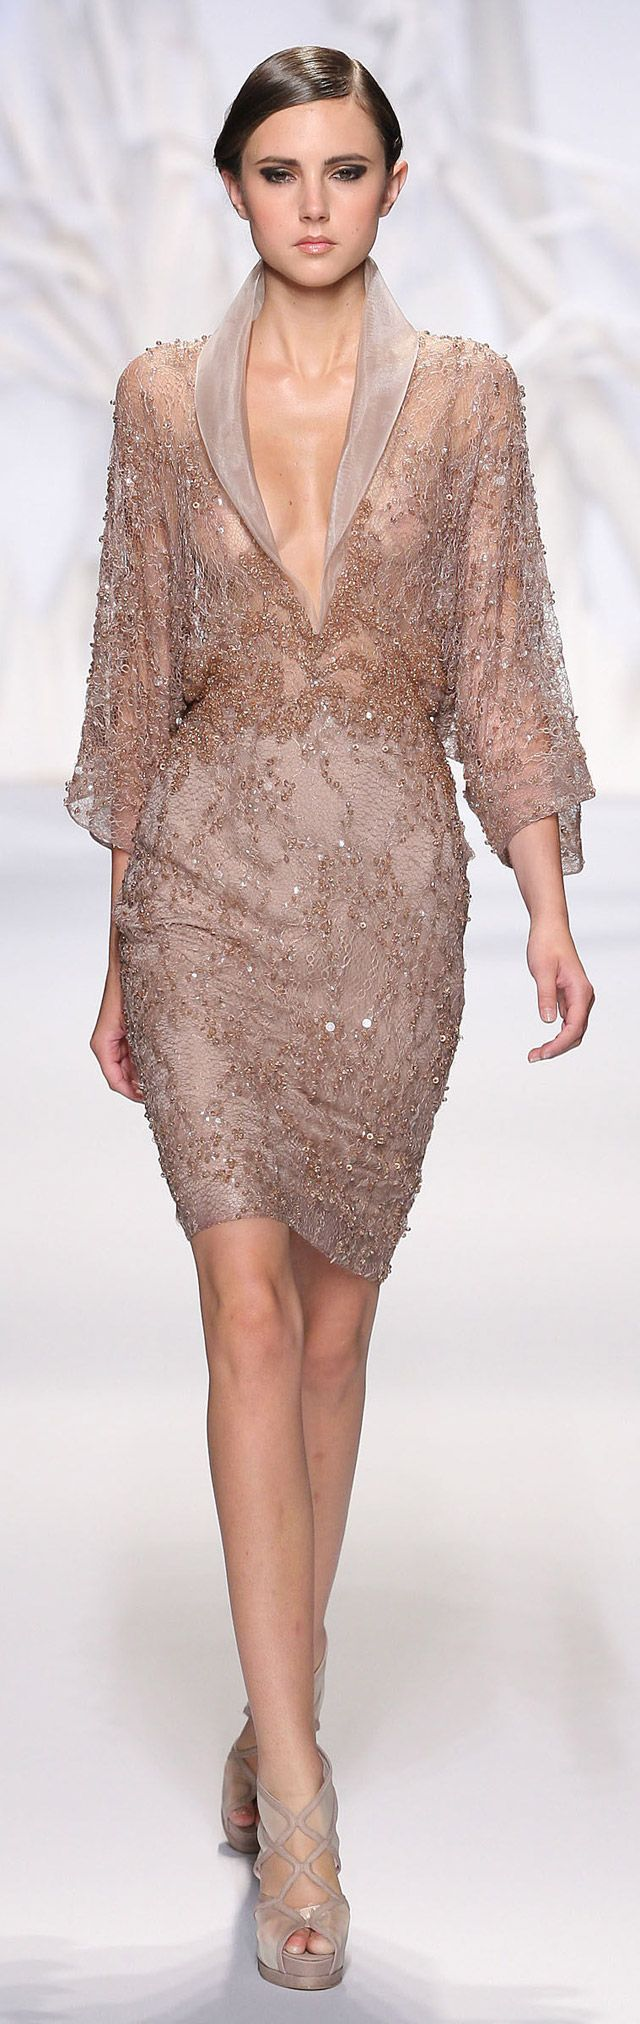 cheap clothes for women Abed Mahfouz Haute Couture Fall Winter 2013 2014